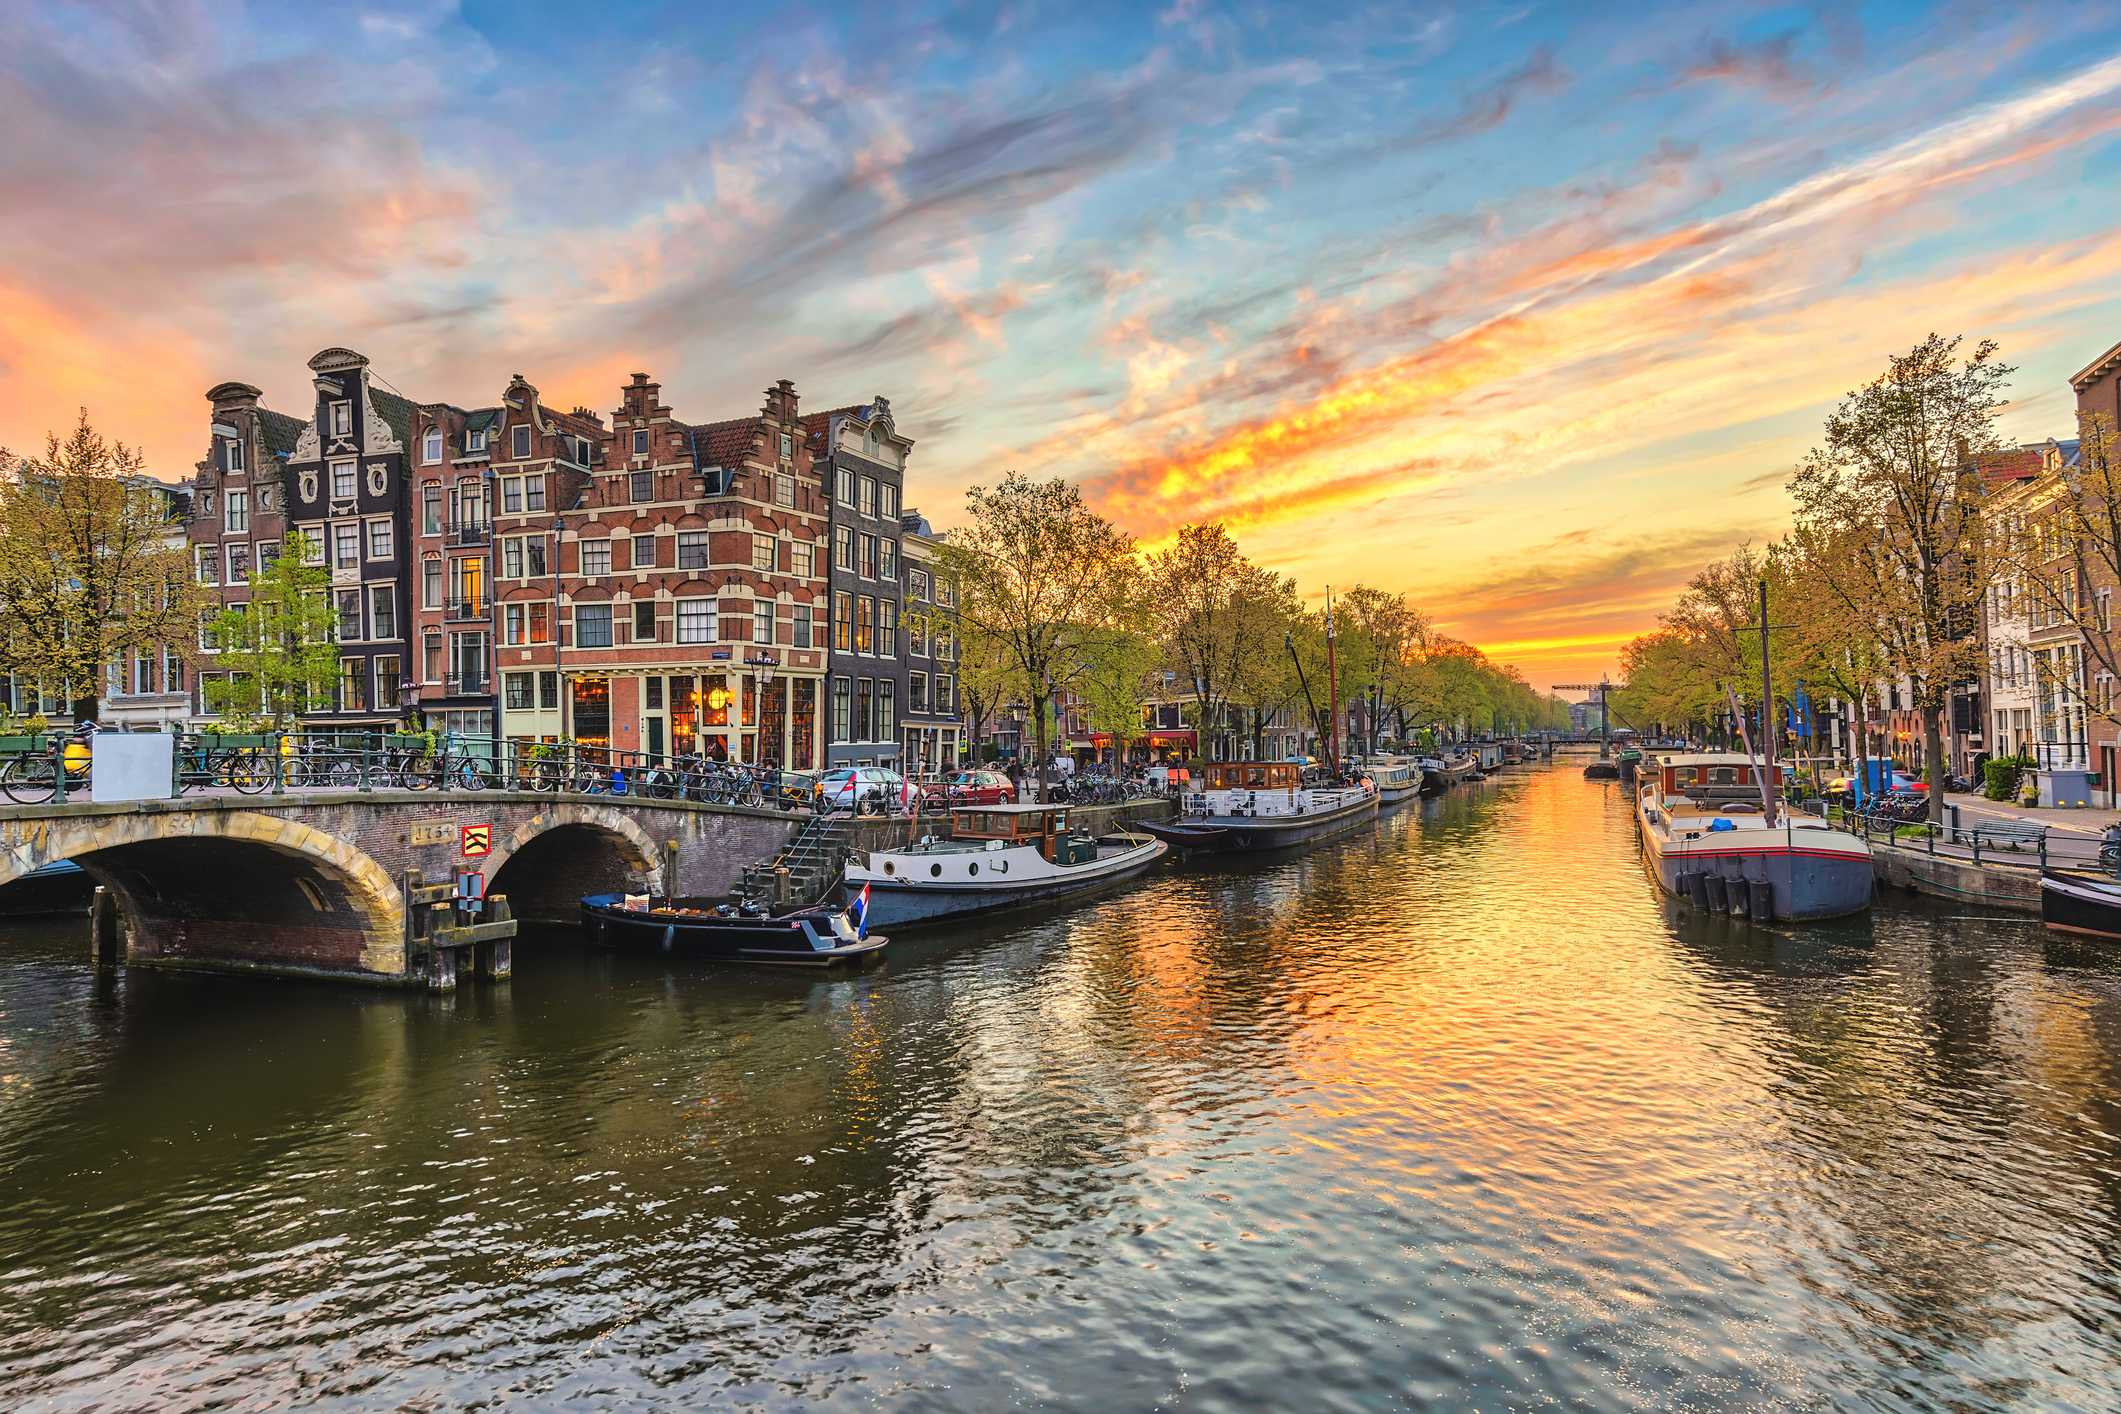 Amsterdam on a Budget: 5 Ways to Save Money in the Dutch Capital